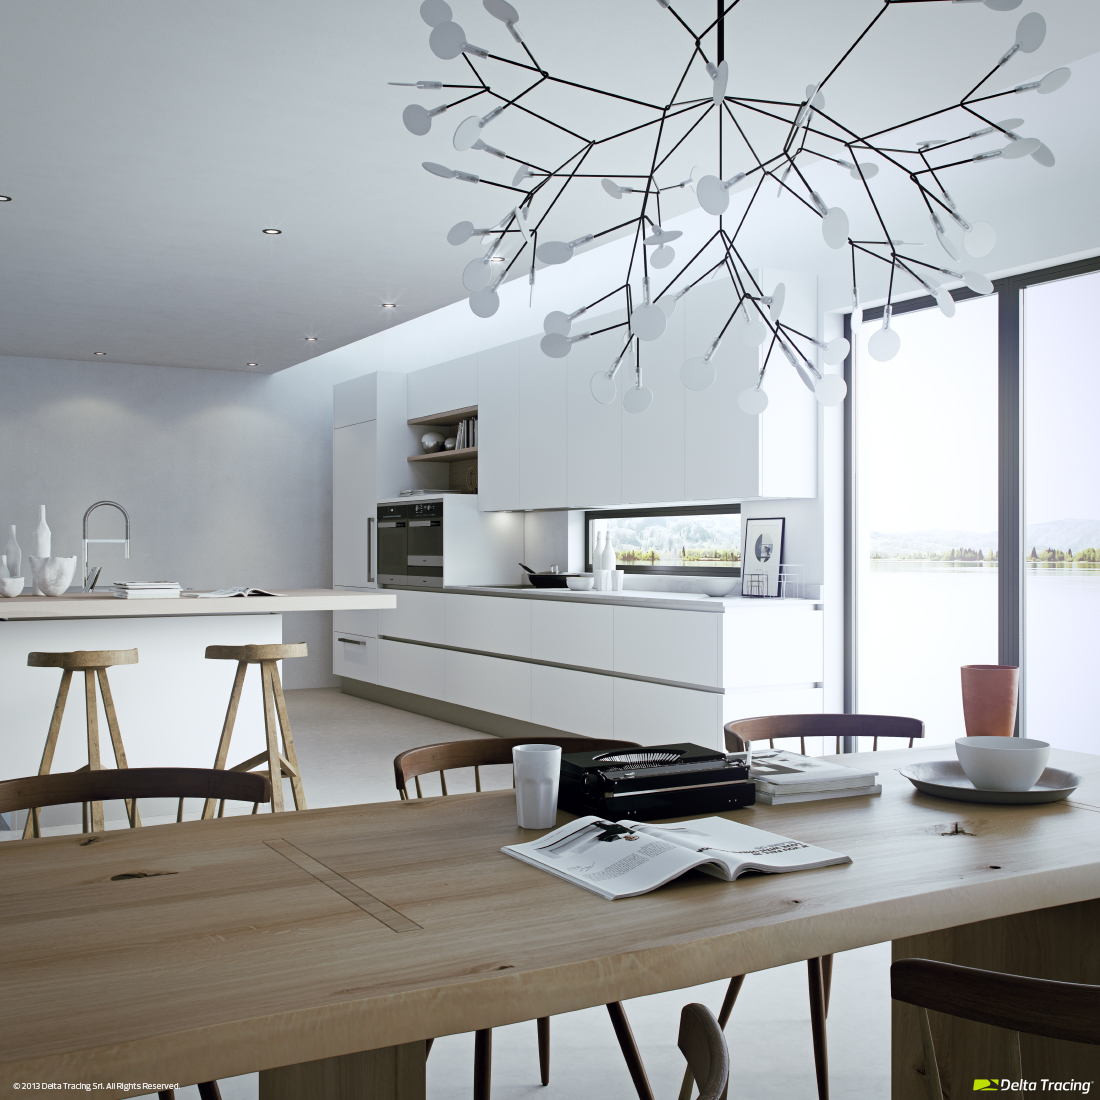 Modern kitchen layout and beautiful lighting roohome designs plans - Stunning modern kitchen lighting proper illumination style ...